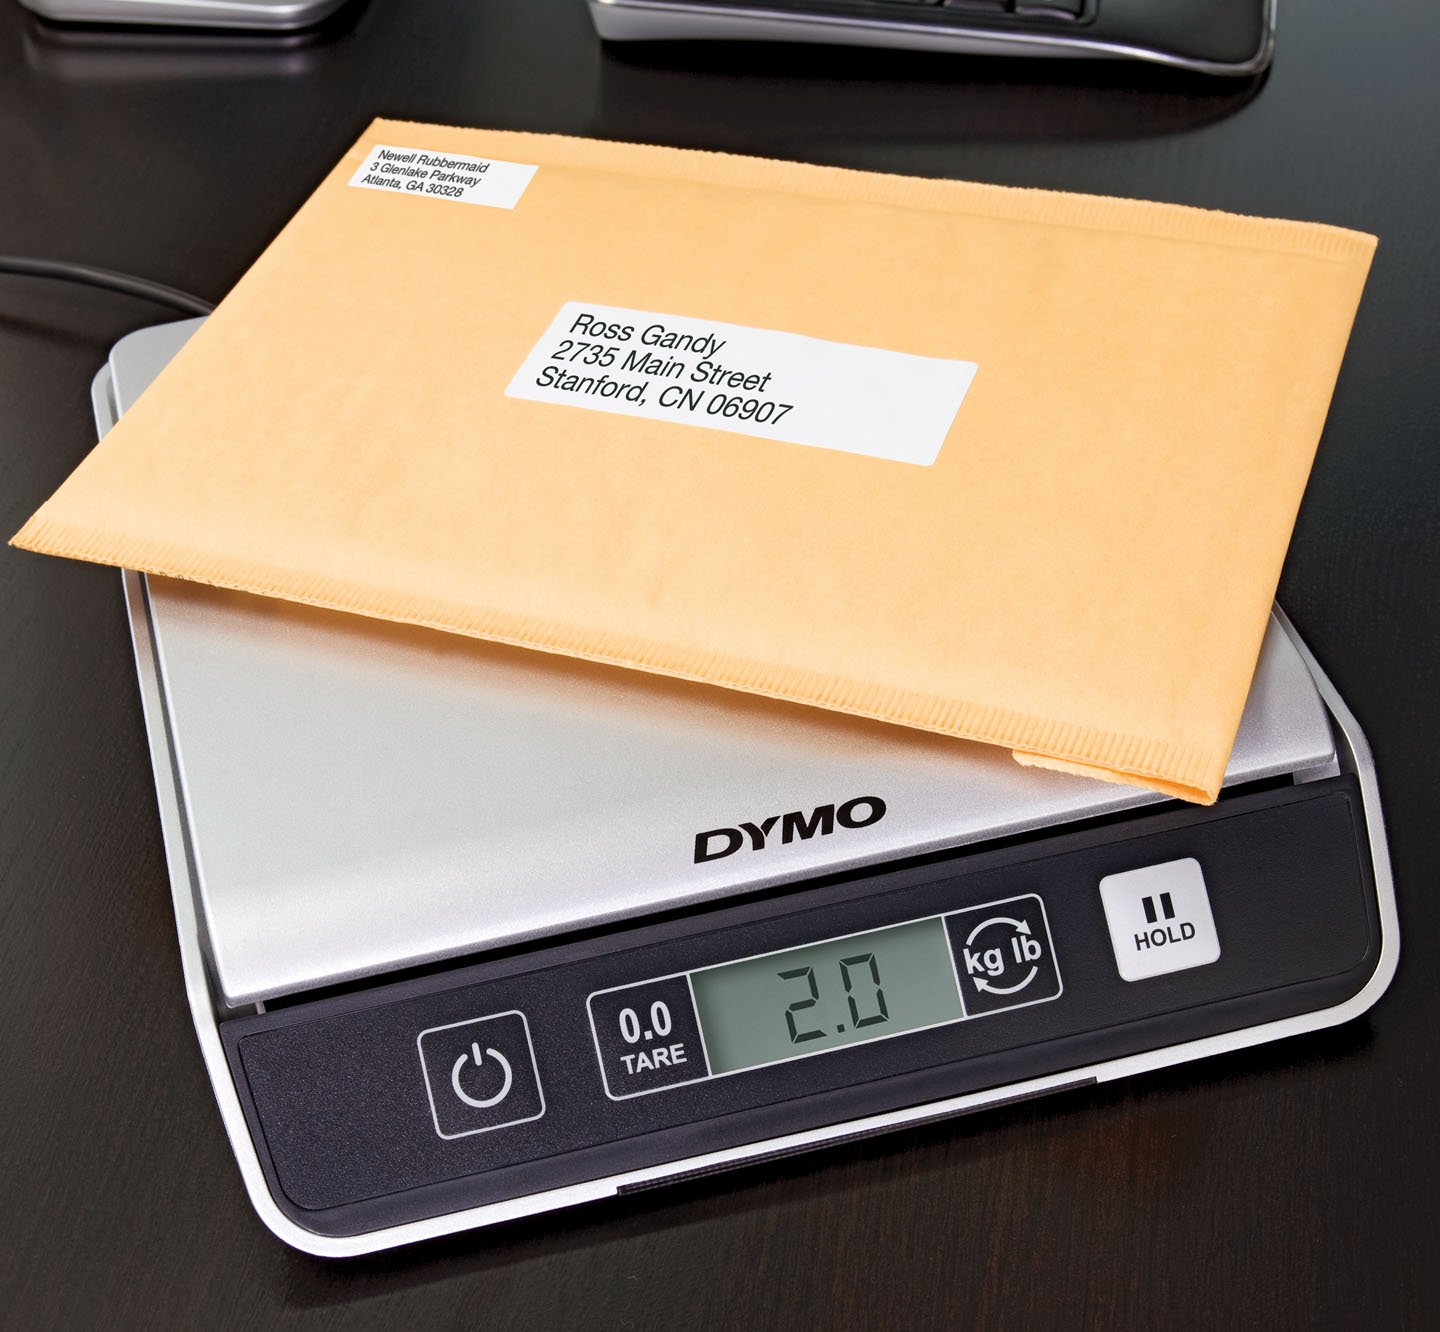 A labeled package being weighed on a scale.